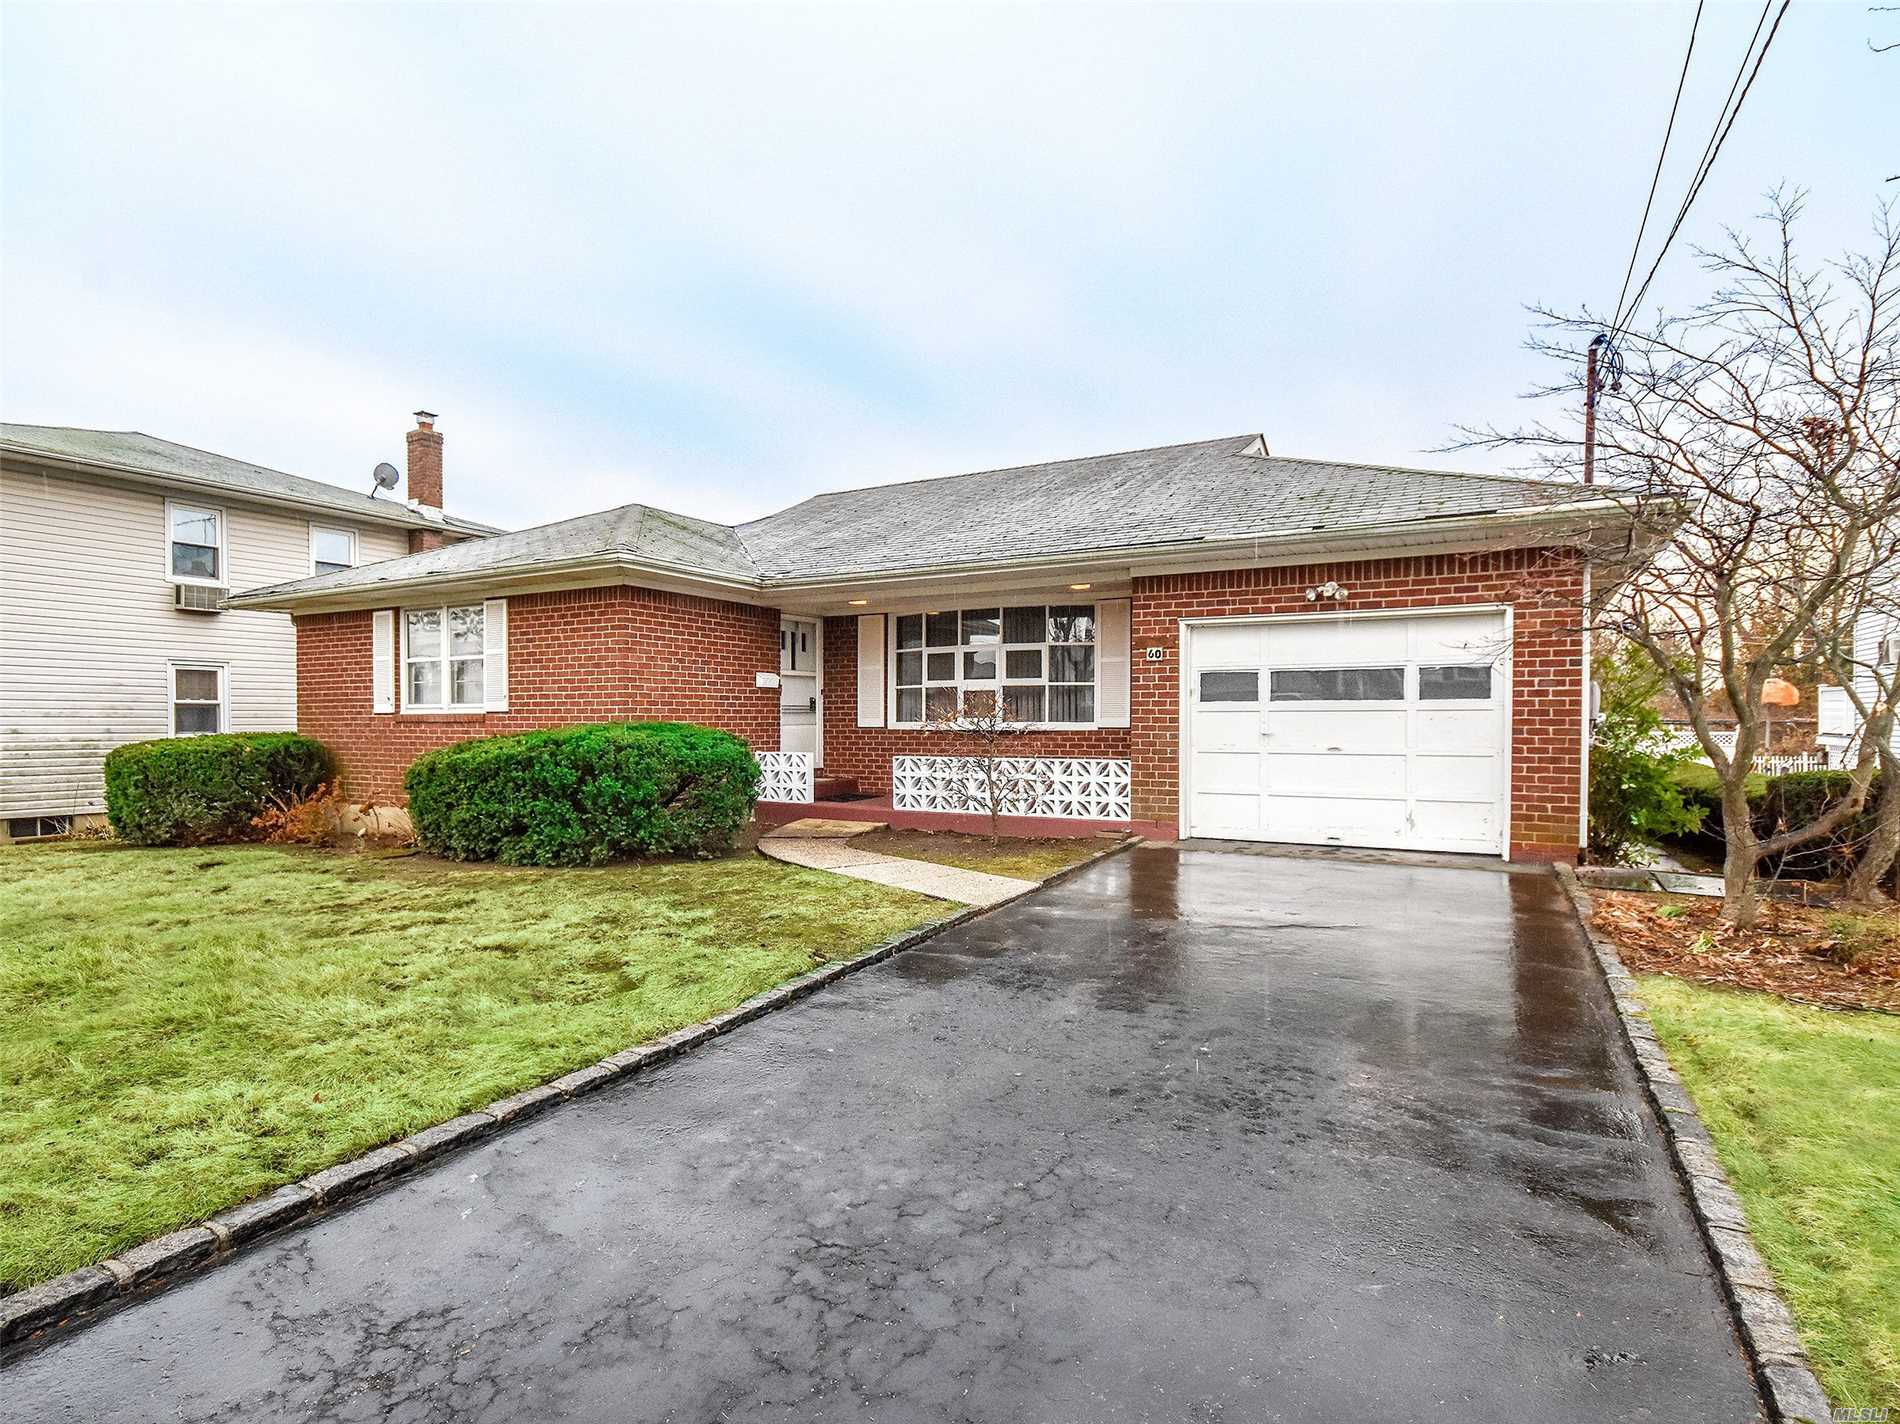 Beautifully Redone 3 Br Ranch With New Hard Wood Floors In Bedrooms, Hall And Living Room, Spacious Eik W/New Tile Flooring, Pantry And Door To Large Covered Porch , Basement W/Ose , Storage, New Washer/Dryer.  Close To Village, Schools, Beaches Golf , Railroad And Main Roads